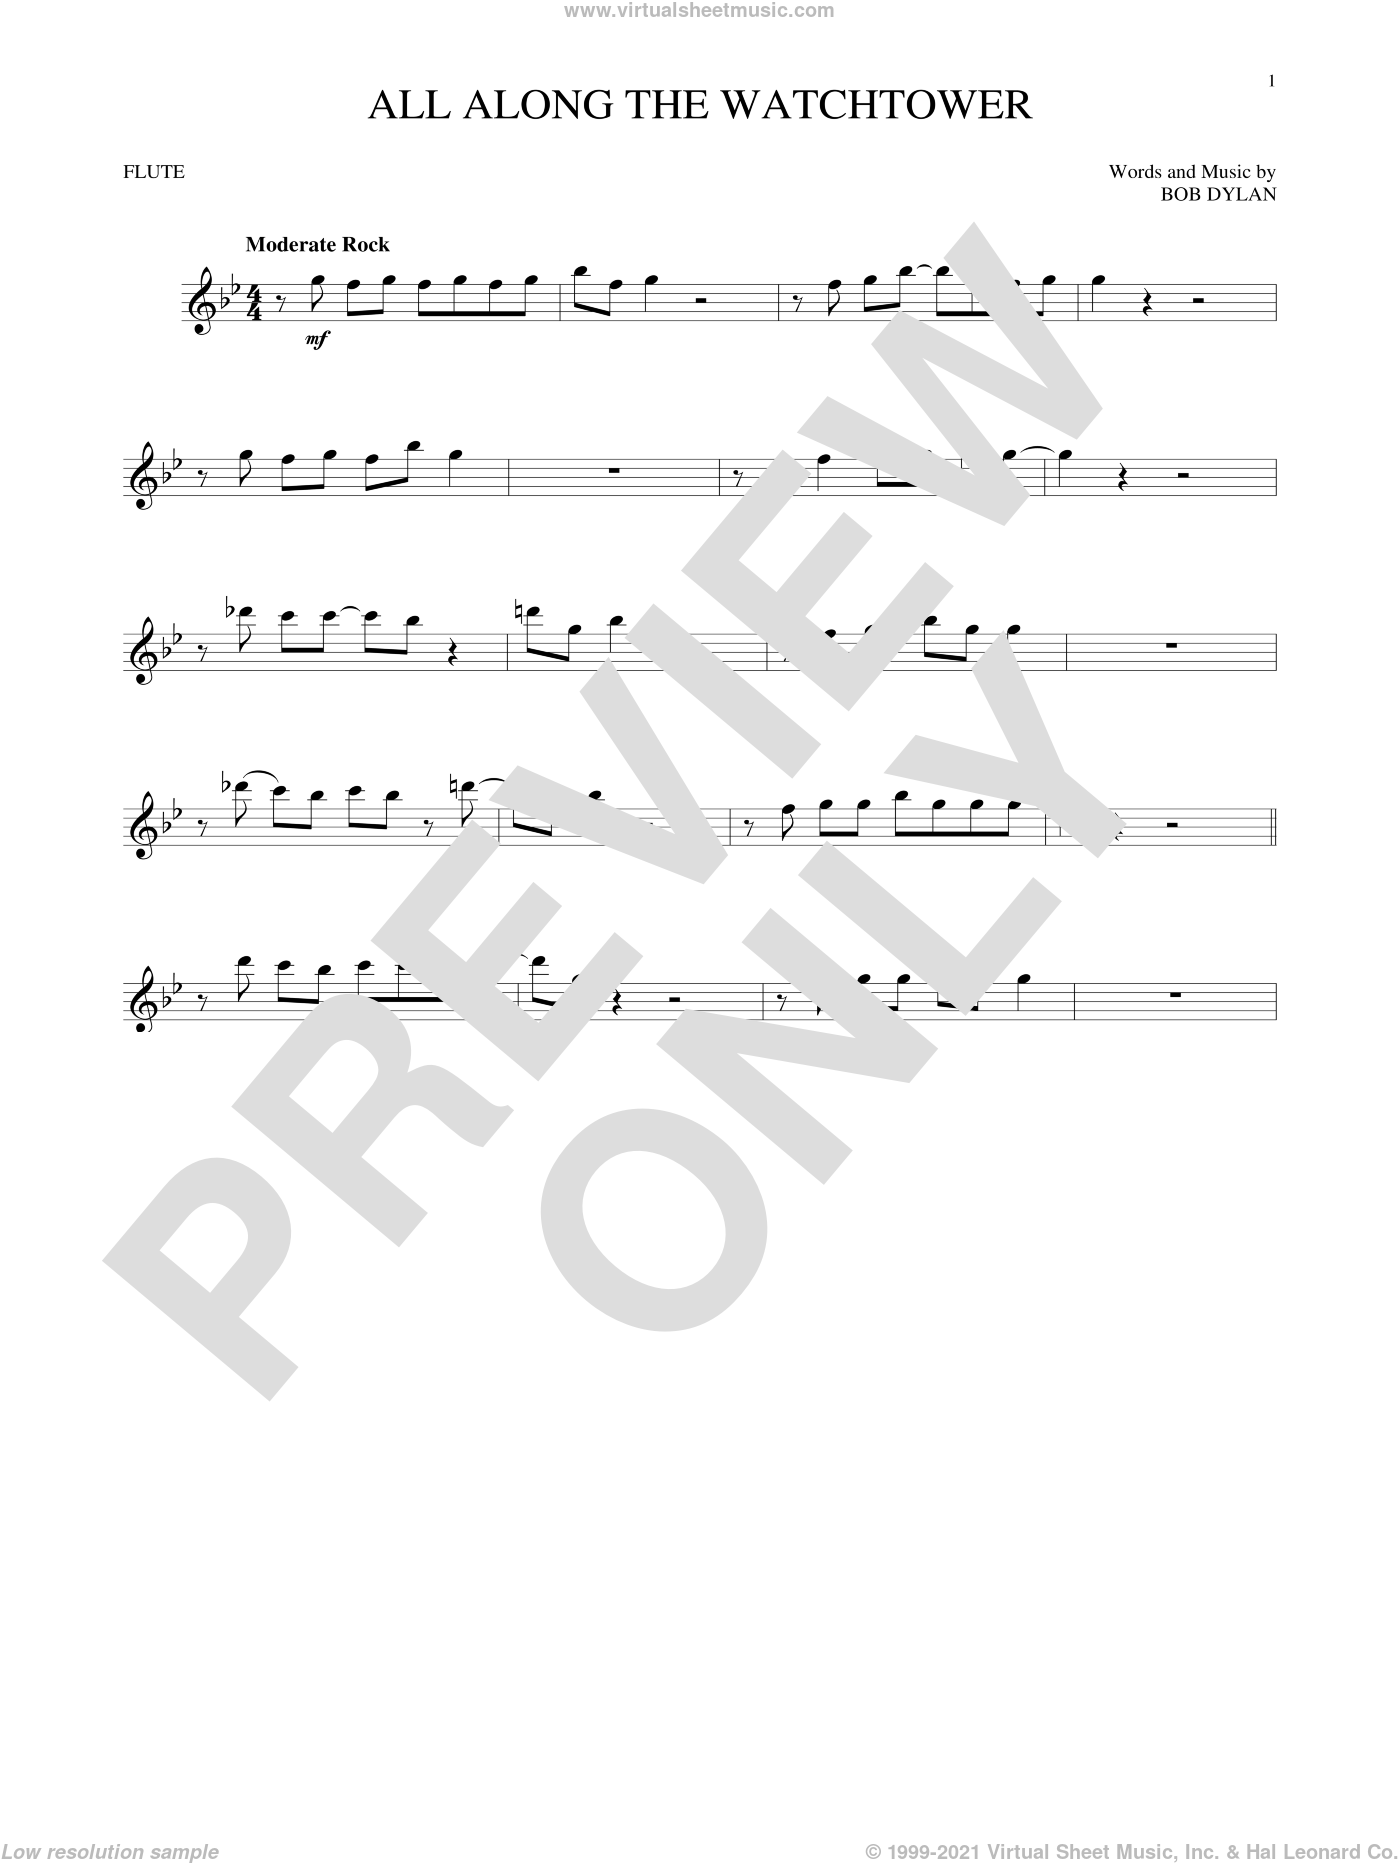 All Along The Watchtower sheet music for flute solo by Bob Dylan, intermediate skill level